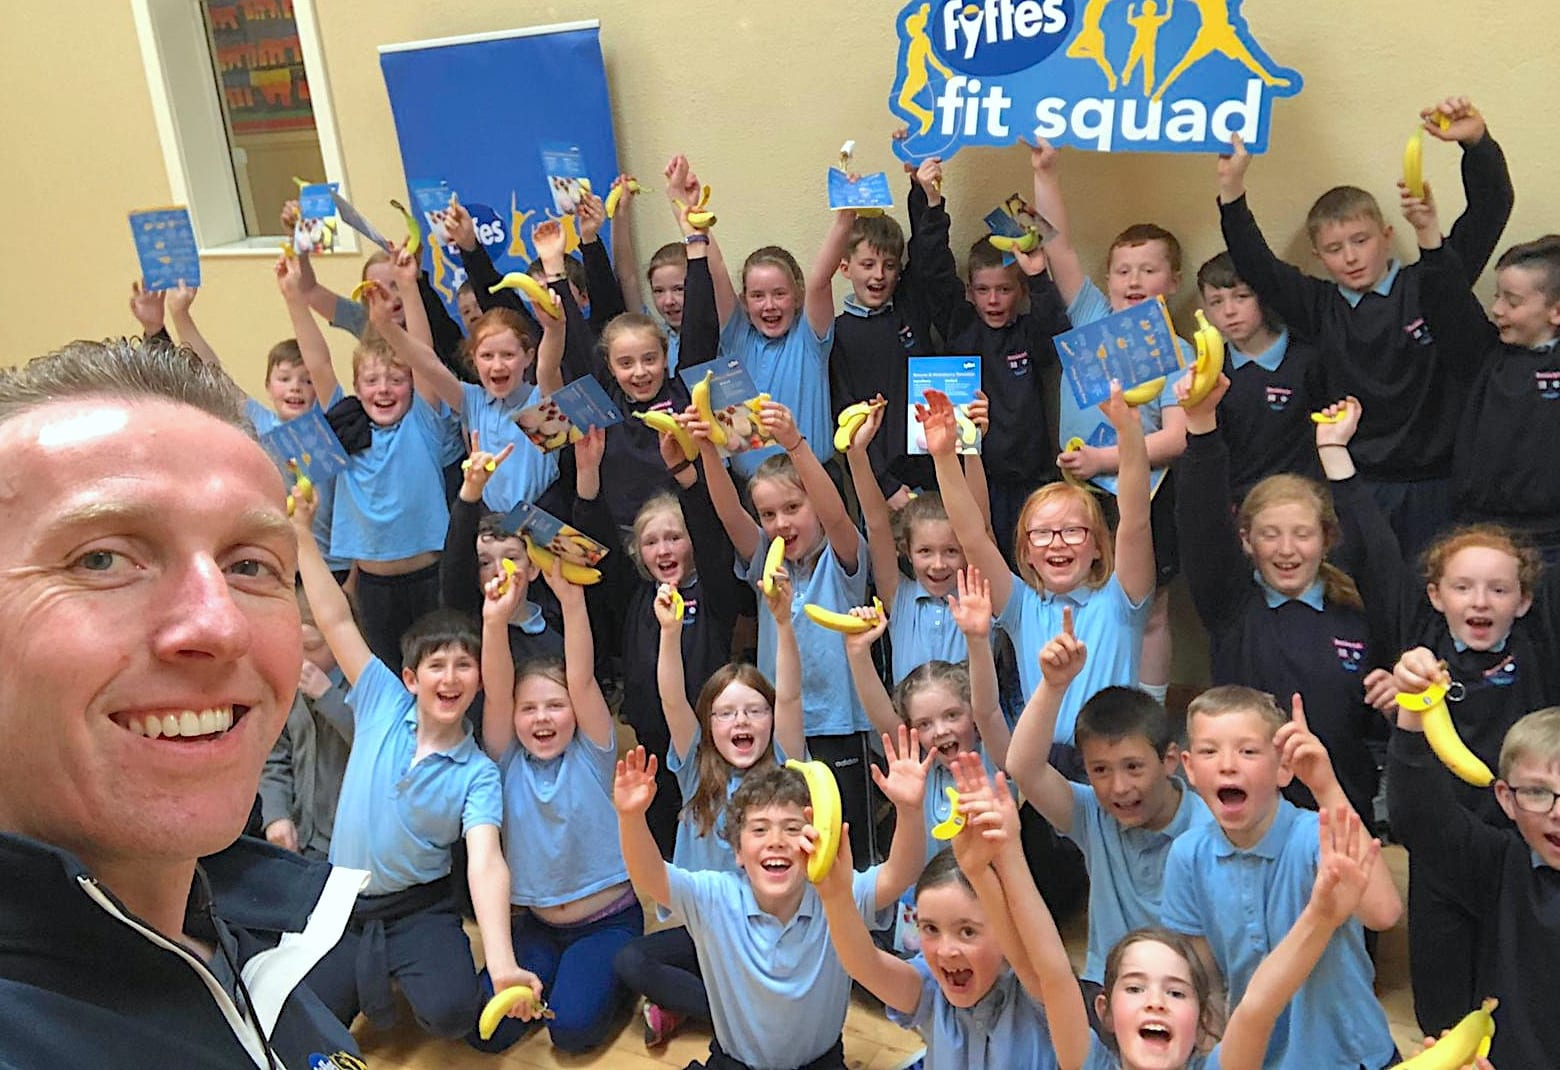 Fun, interactive fitness initiative welcomed by Galway teachers